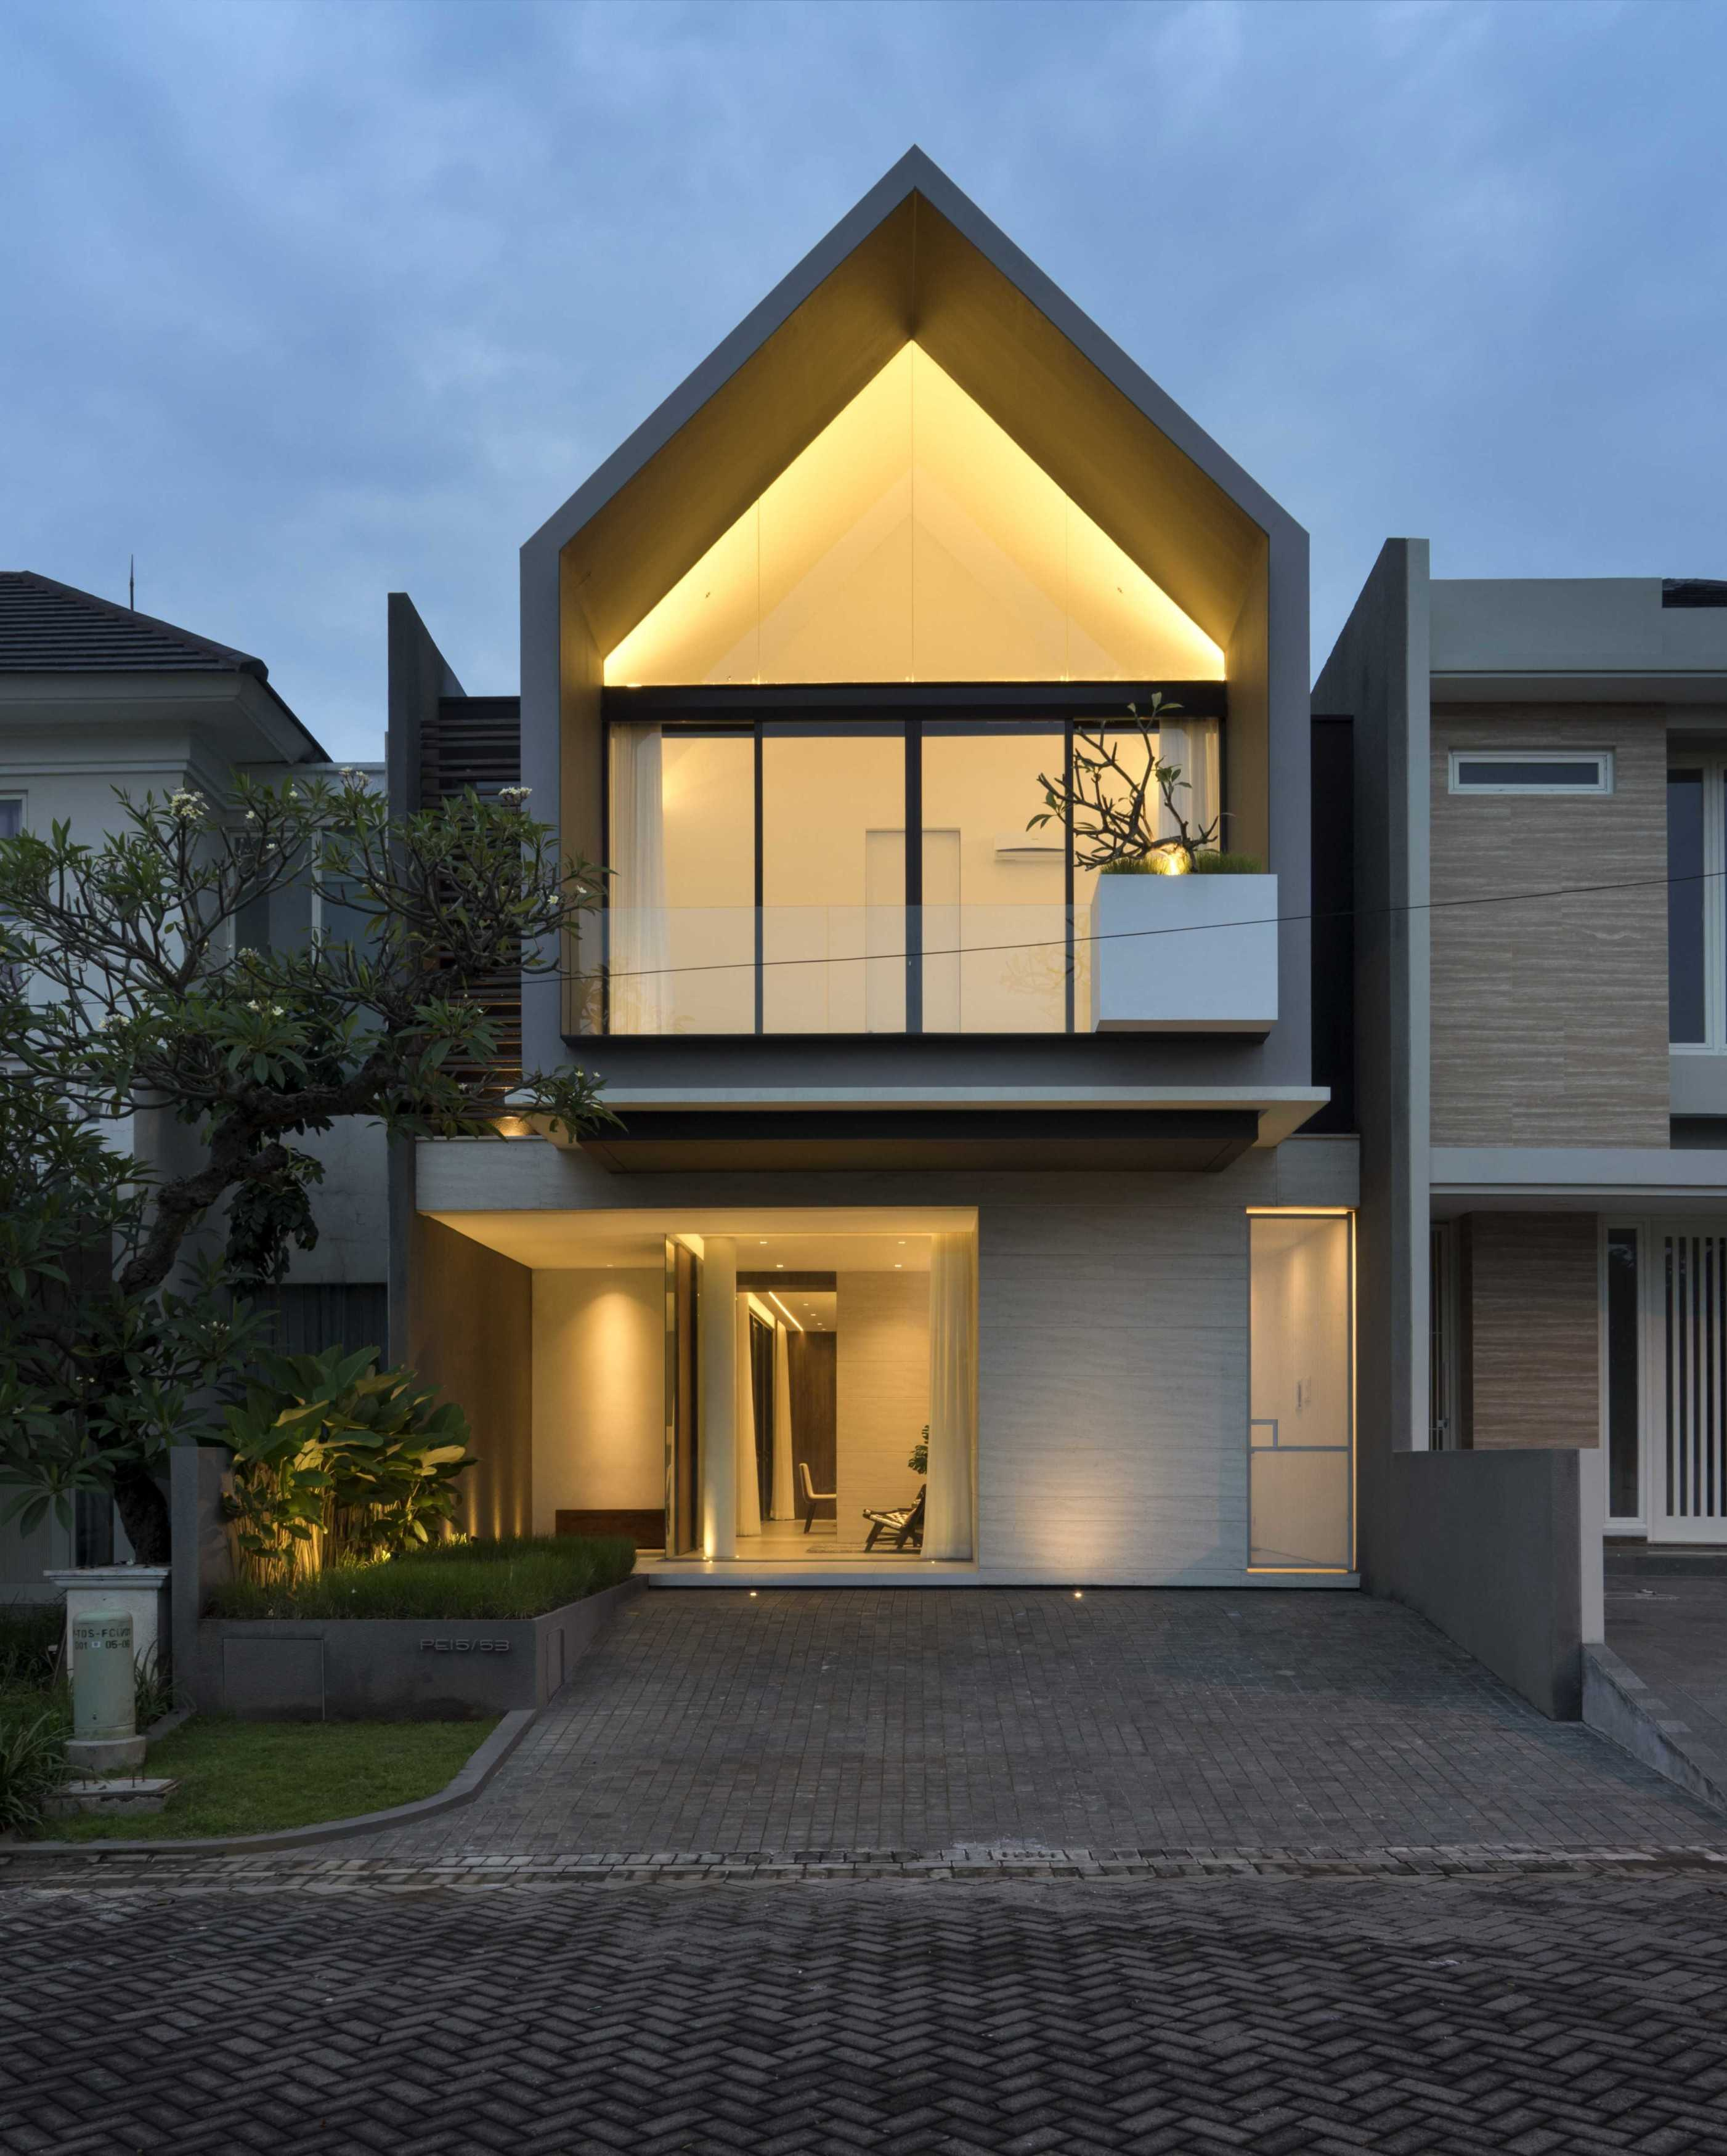 Simple Projects Architecture 'hhh' House Surabaya, Kota Sby, Jawa Timur, Indonesia  Simple-Projects-Architecture-Hhh-House   75052